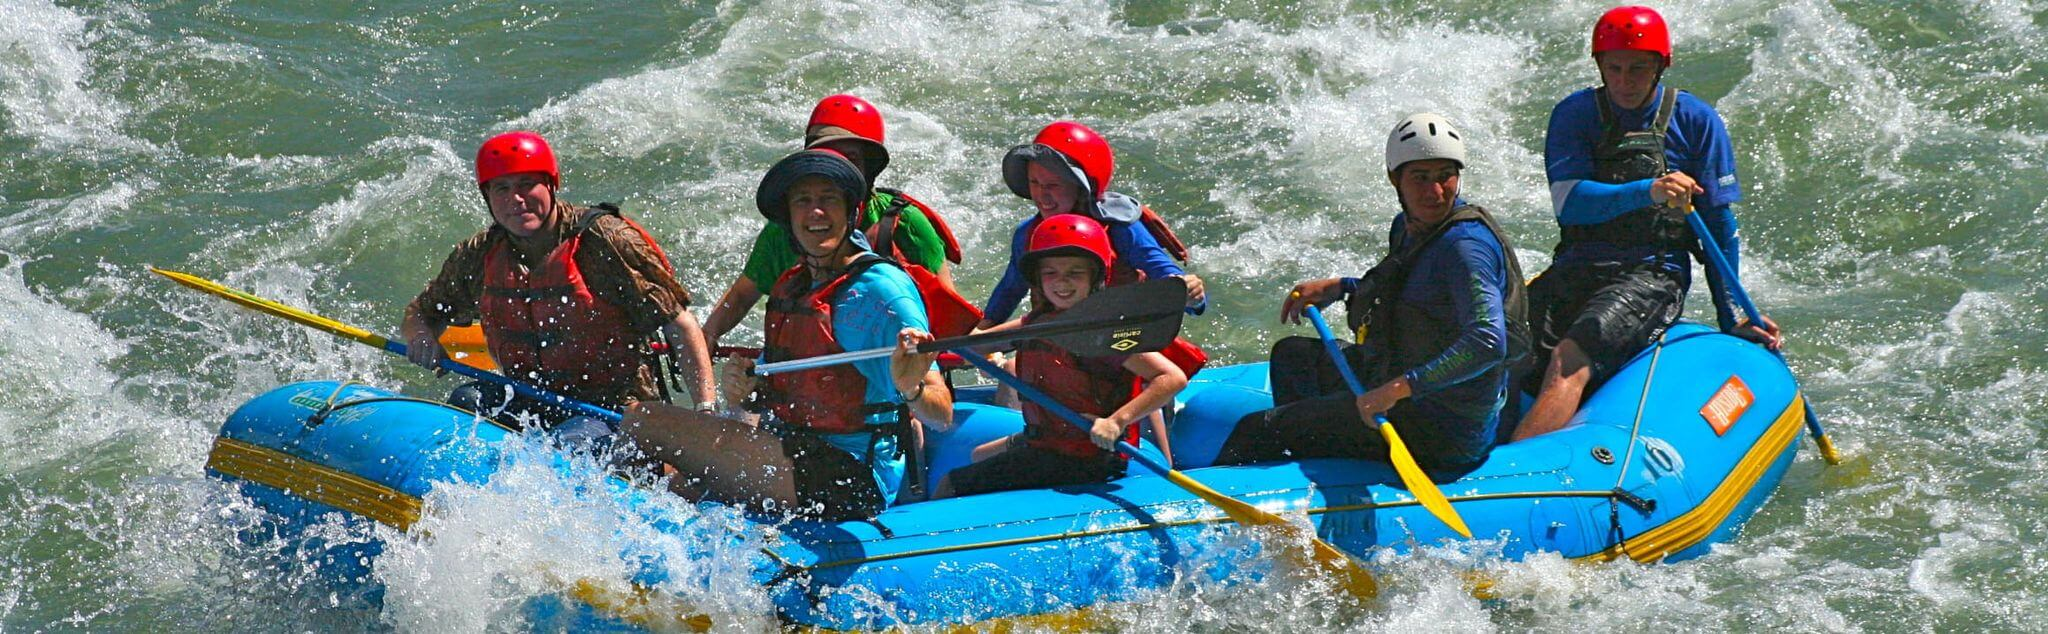 Rafting a Salerno